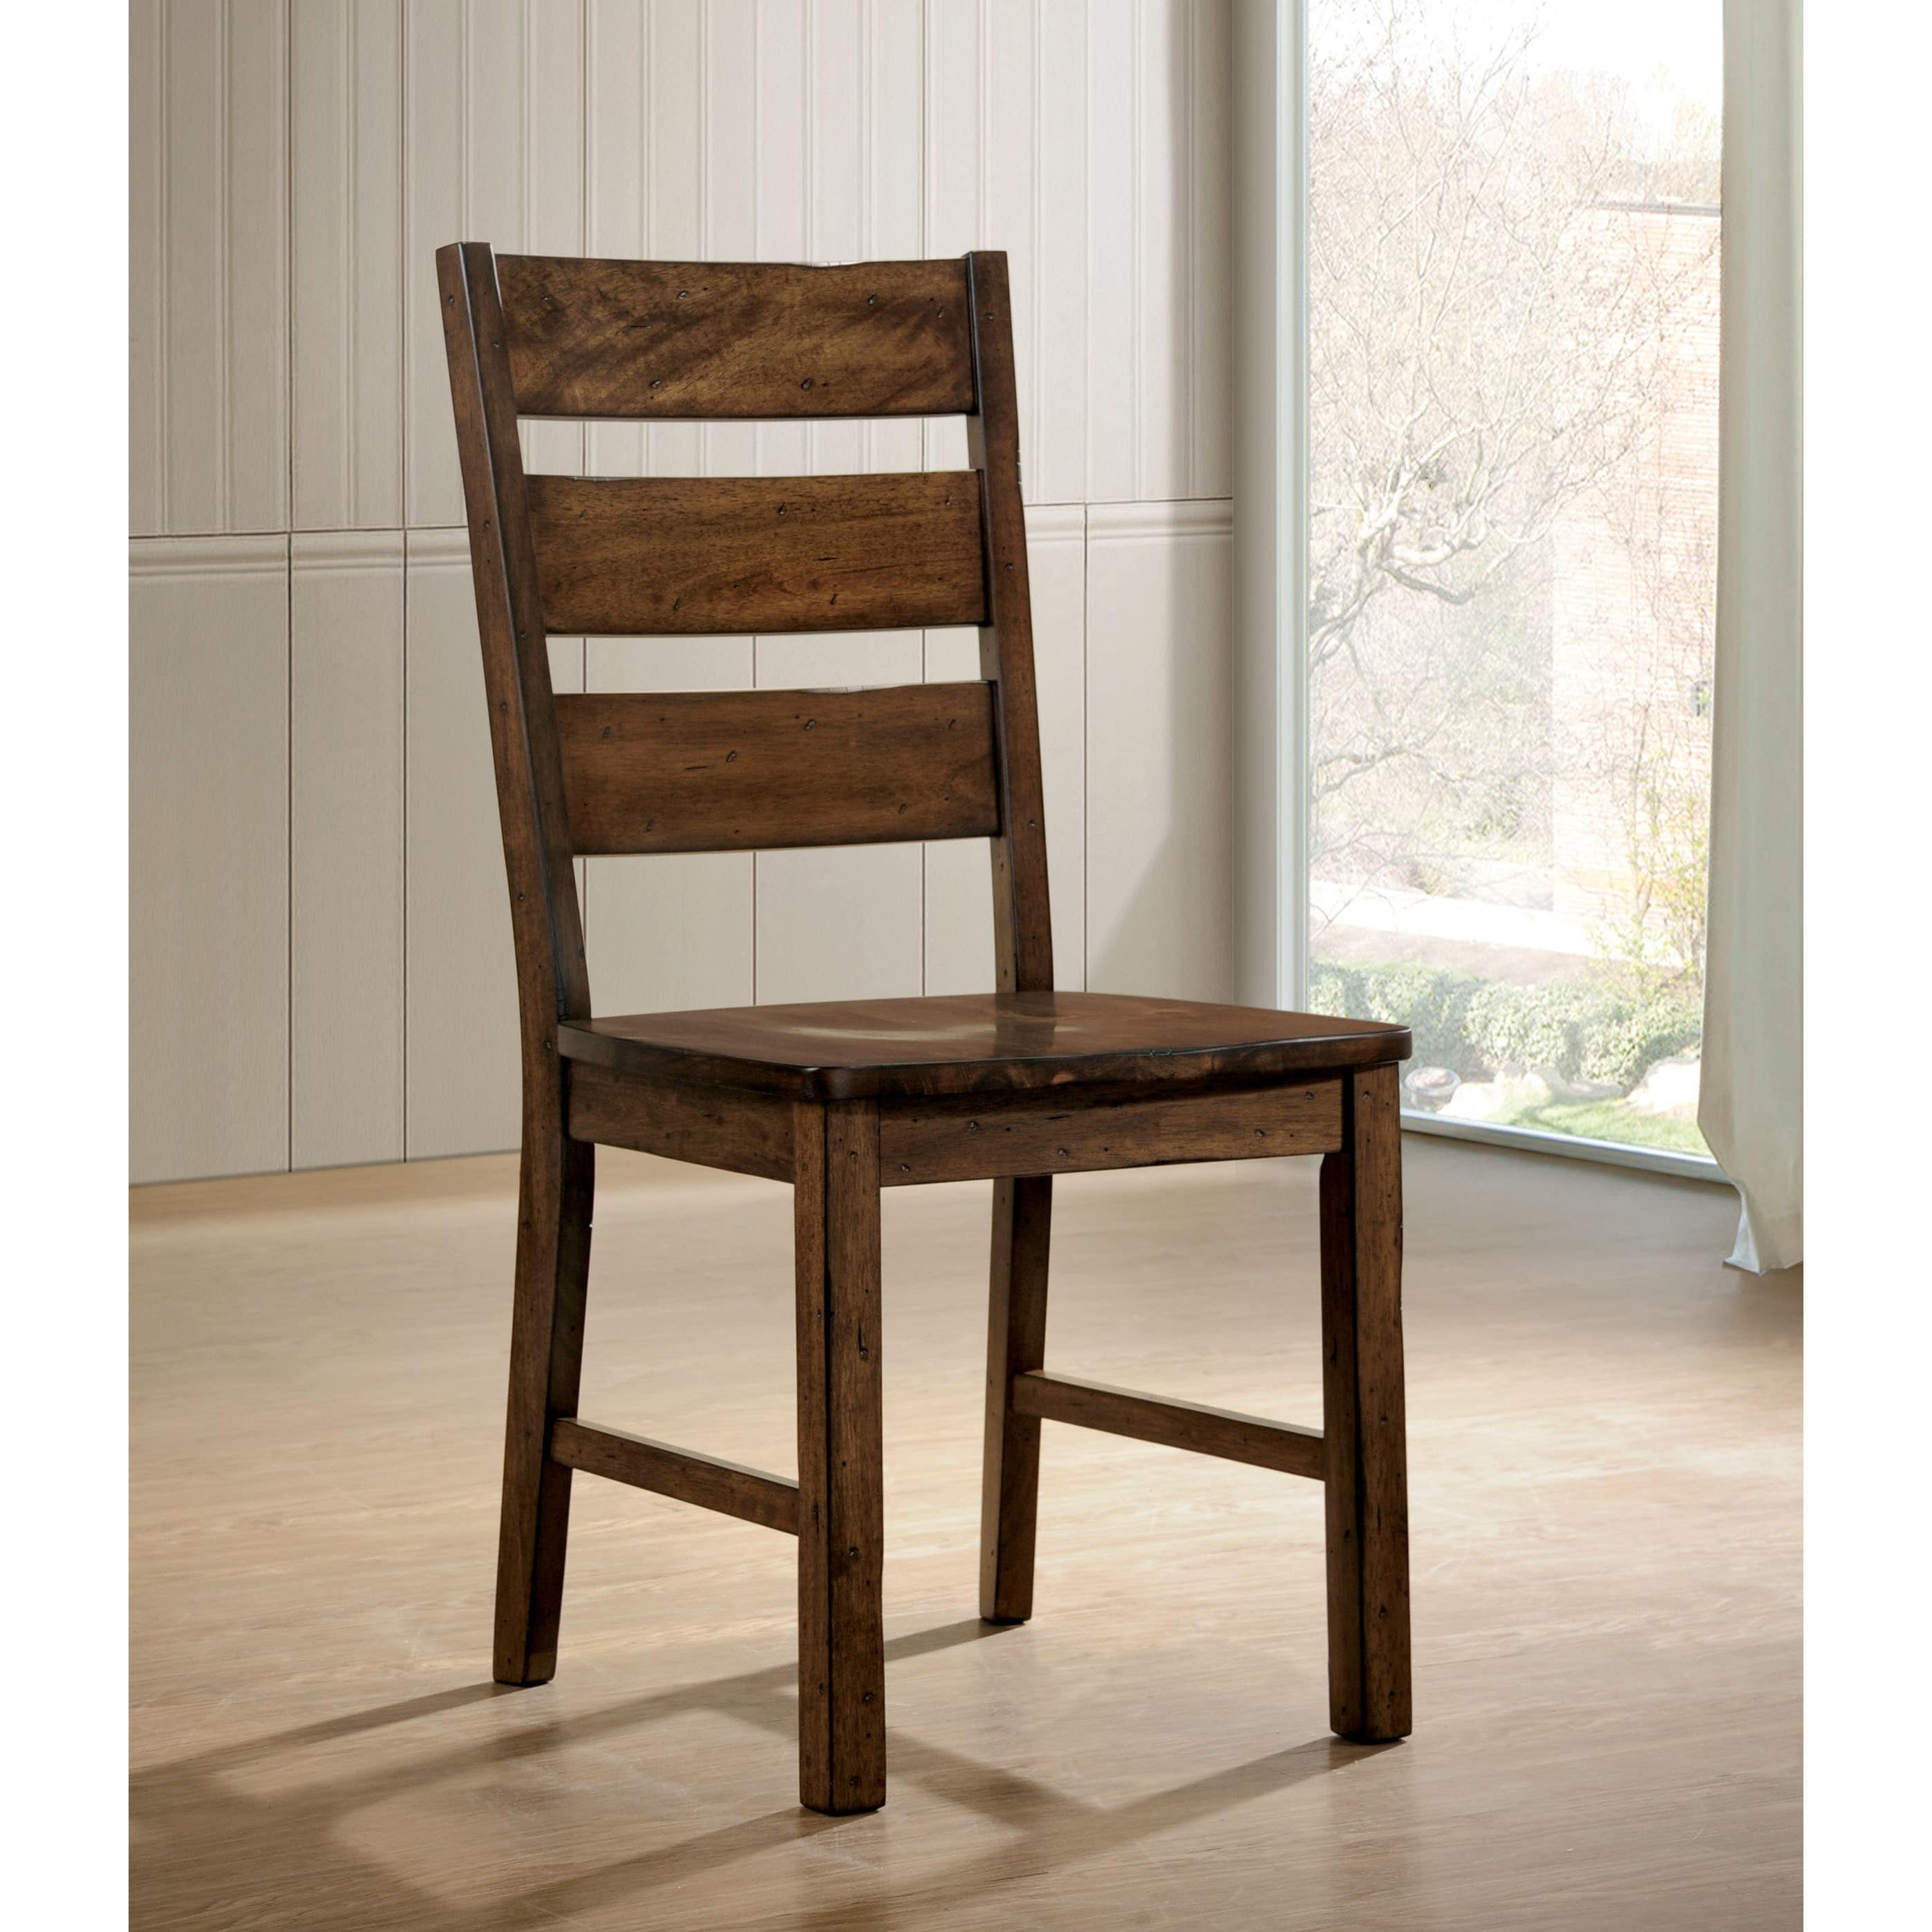 Walnut Dining Chair Terele Rustic Walnut Dining Chairs Set Of 2 By Foa